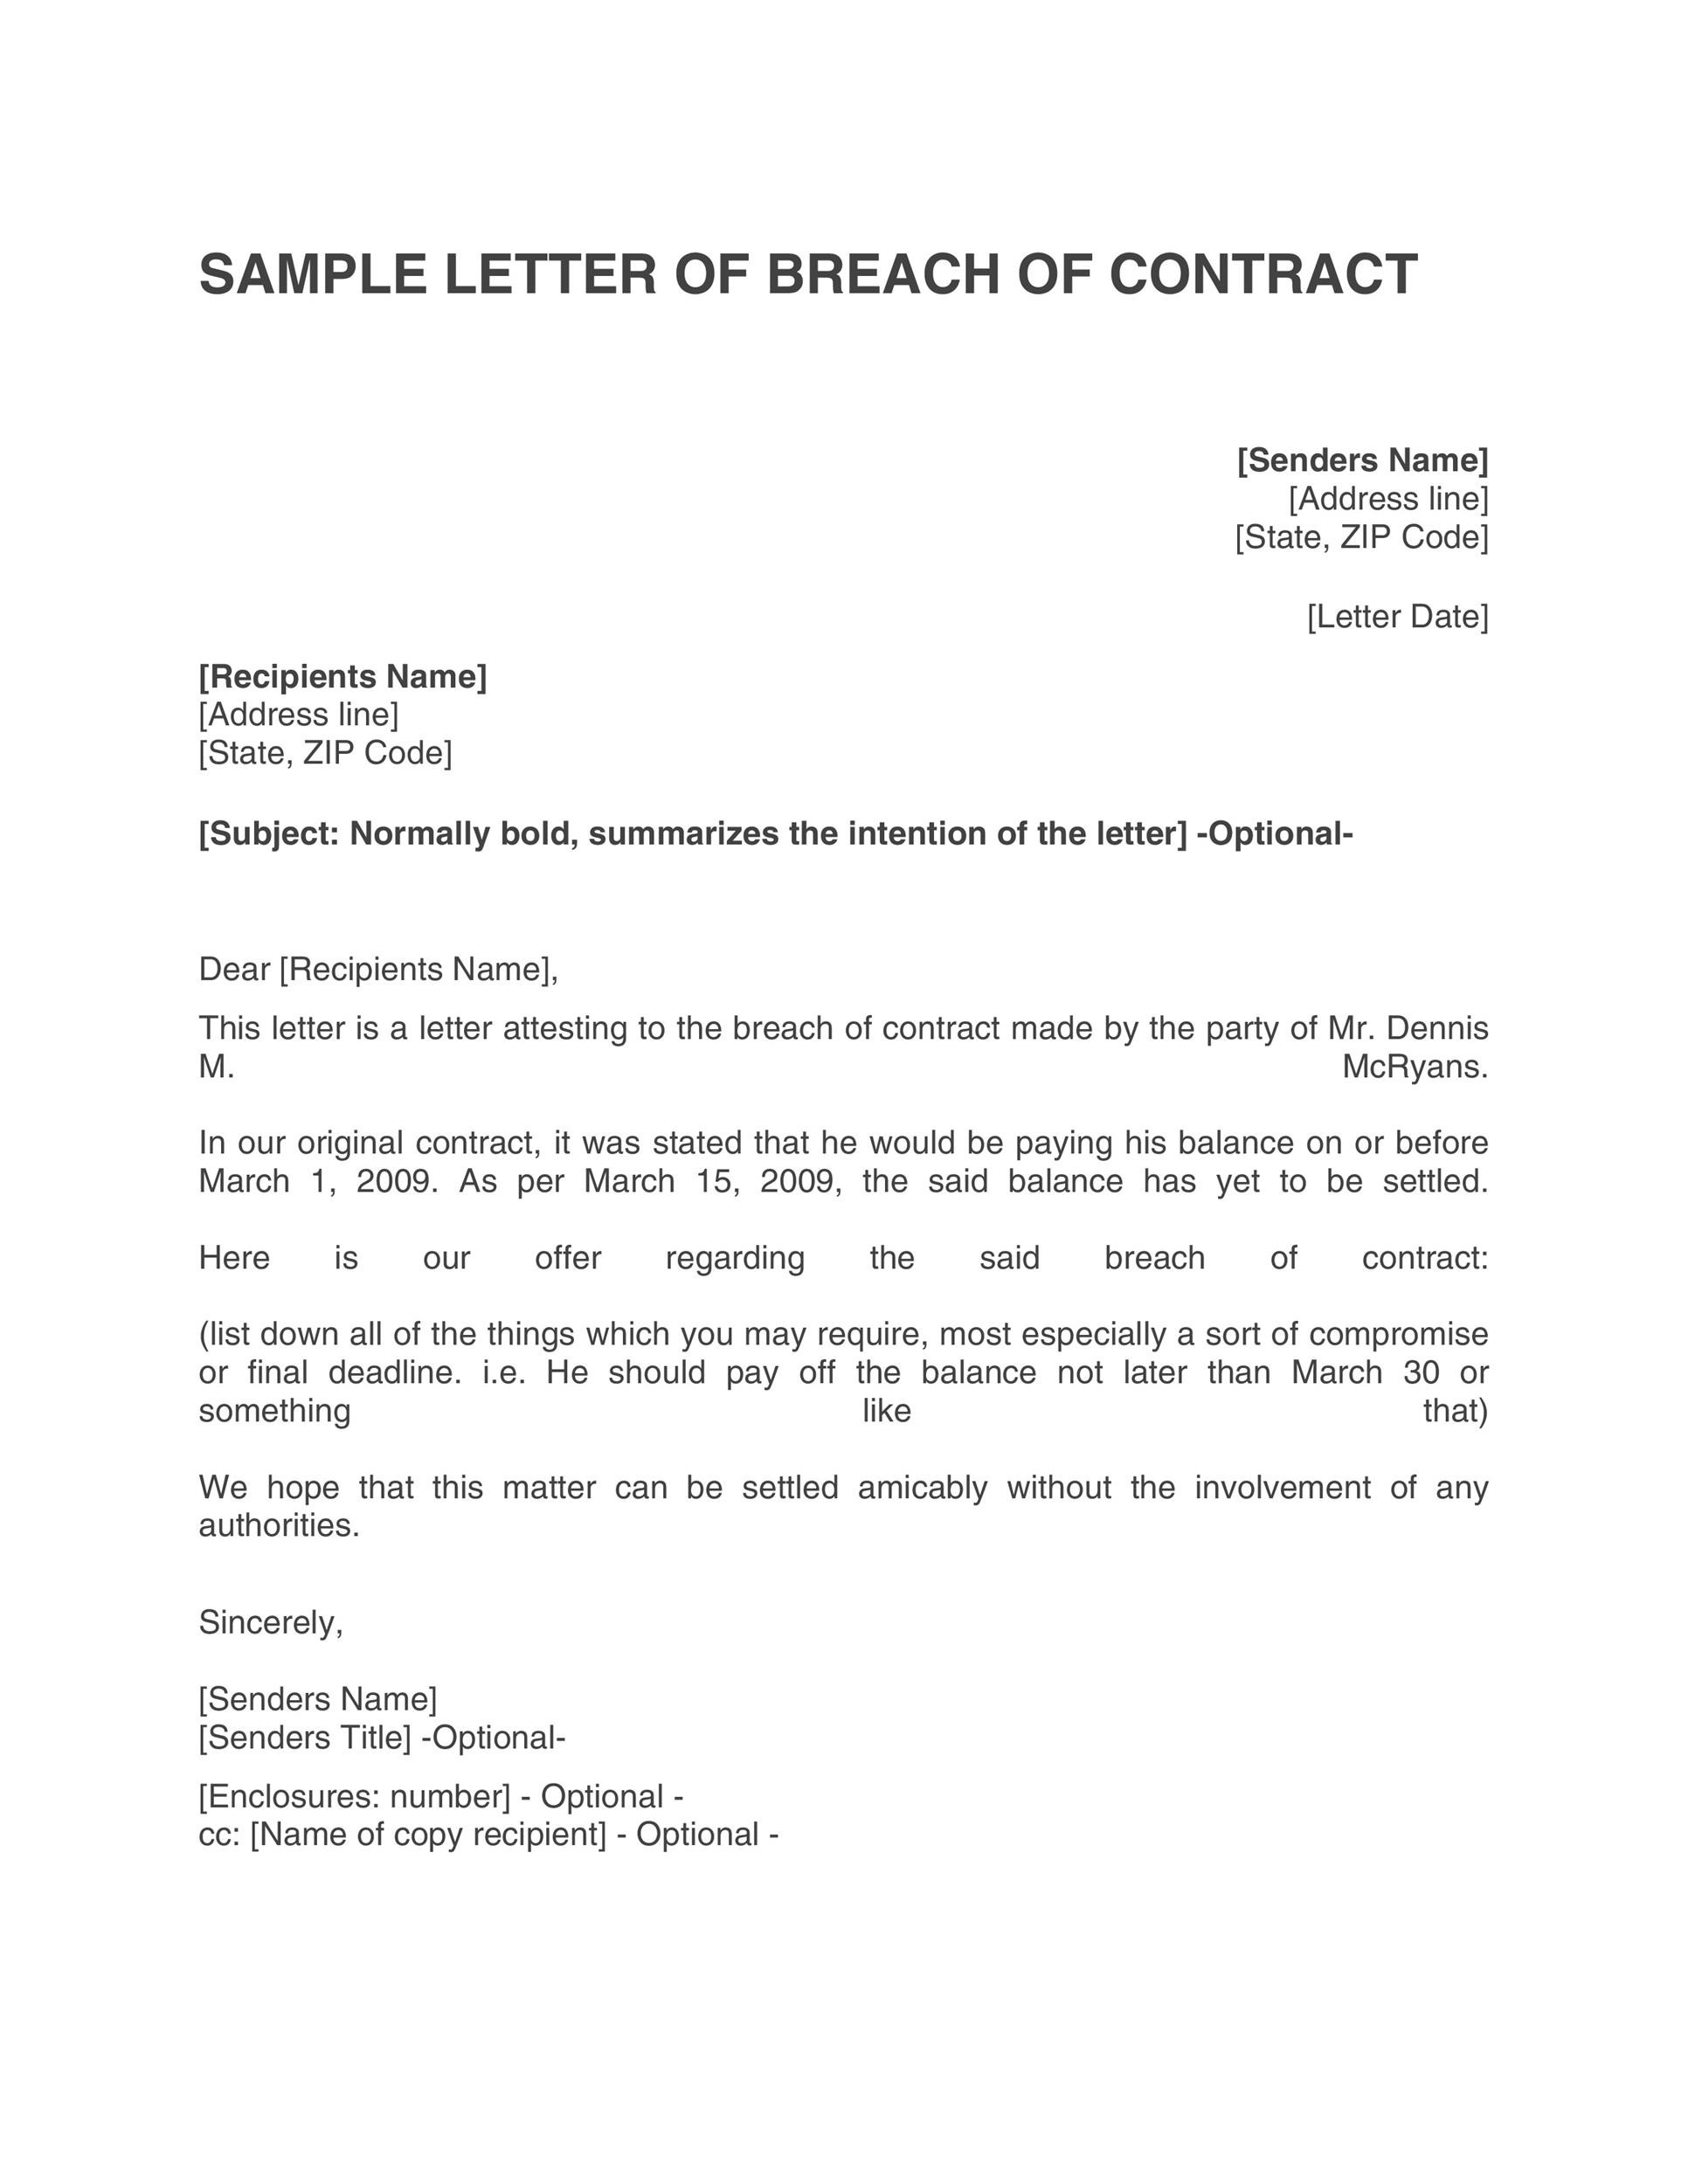 Breach Of Contract Letter Example from templatelab.com